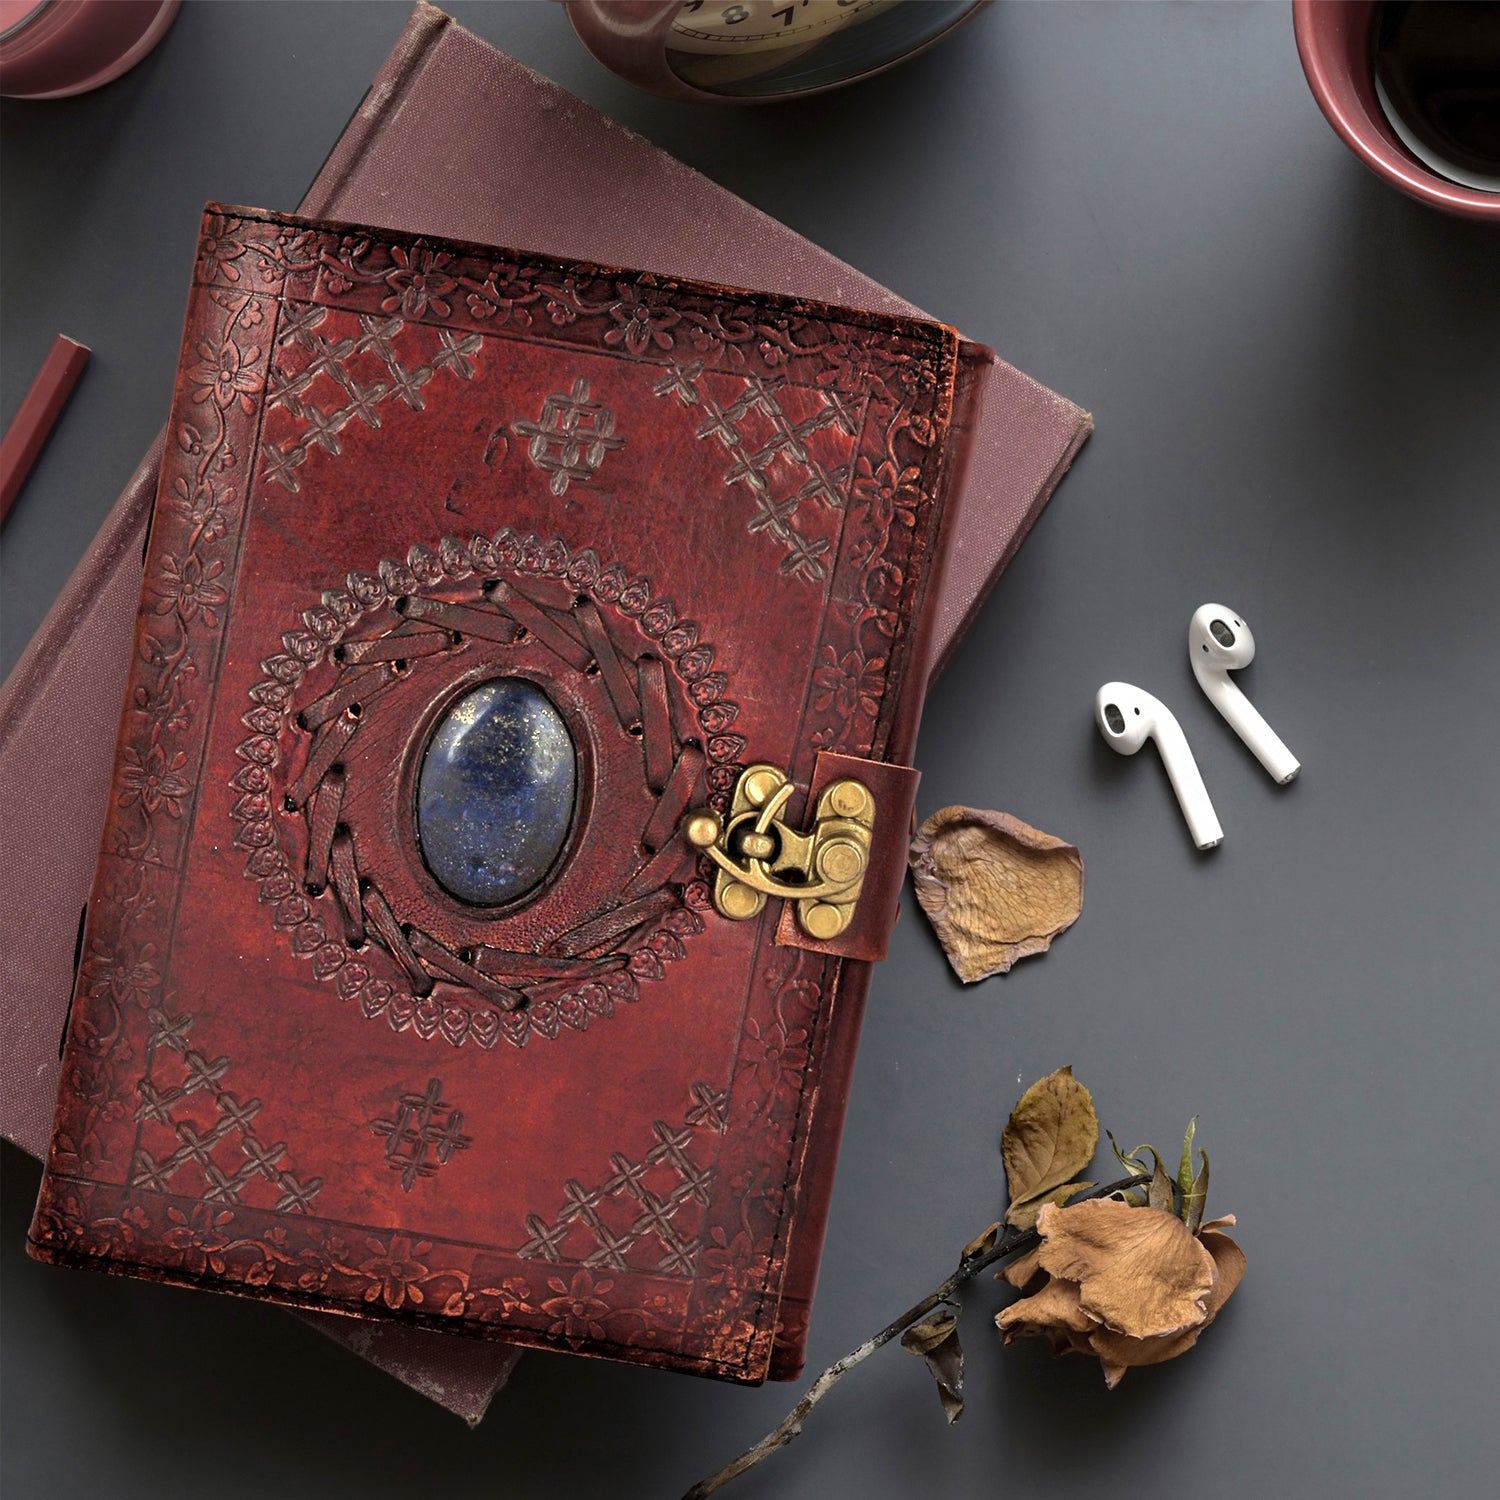 Utopian Leather Journal with Semi-precious Stone & Buckle Closure Leather Diary Gift for Him Her